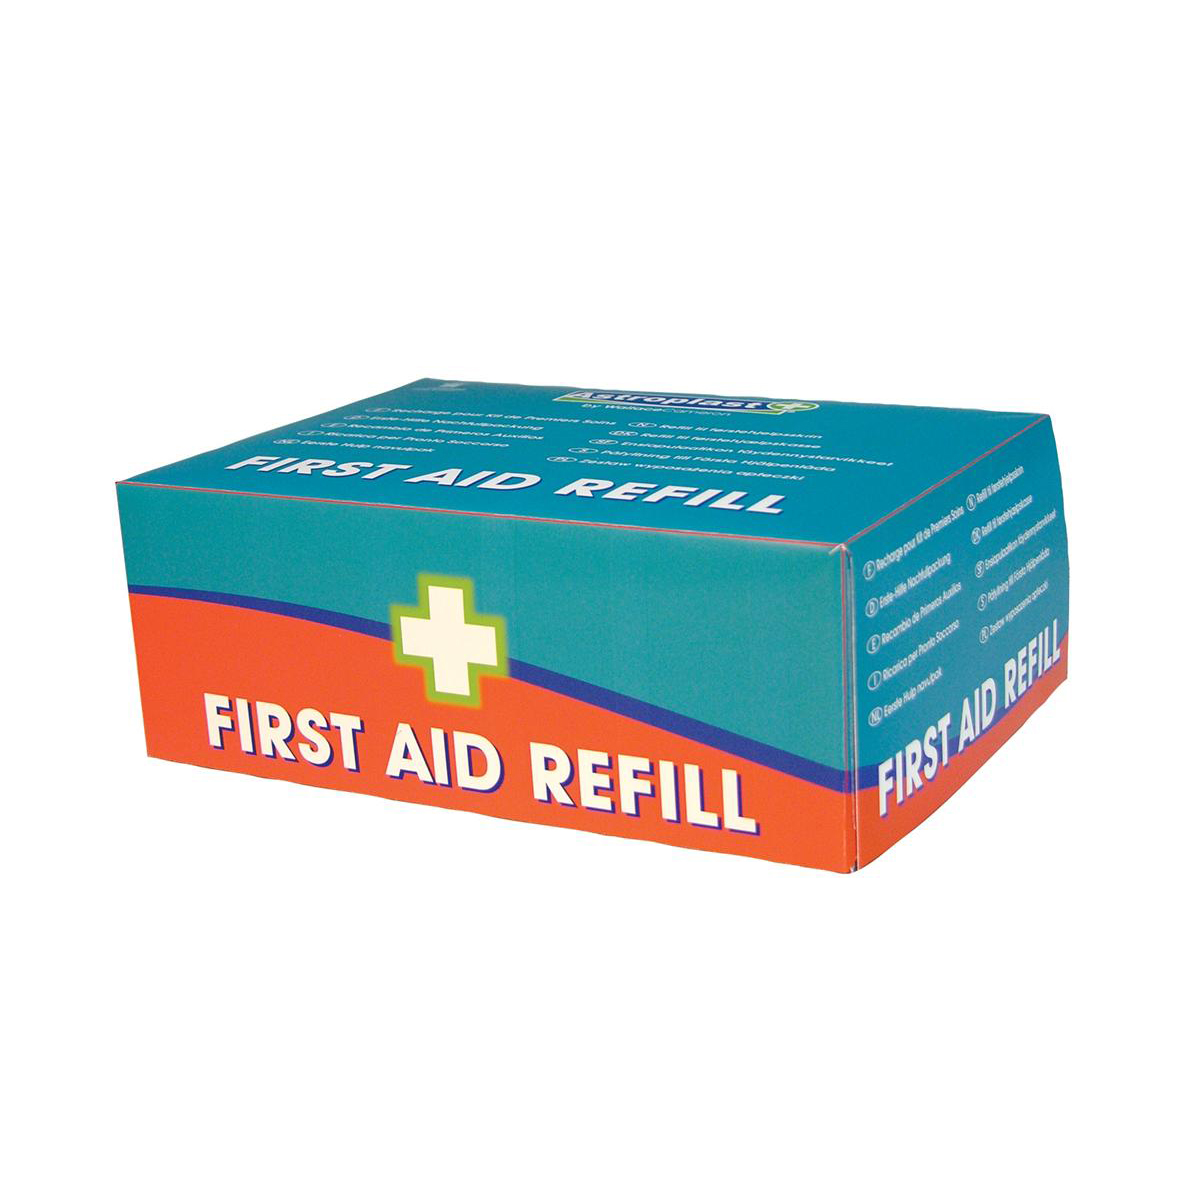 Equipment Wallace Cameron Refill for 10 Person First-Aid Kit HS1 Ref 1036092